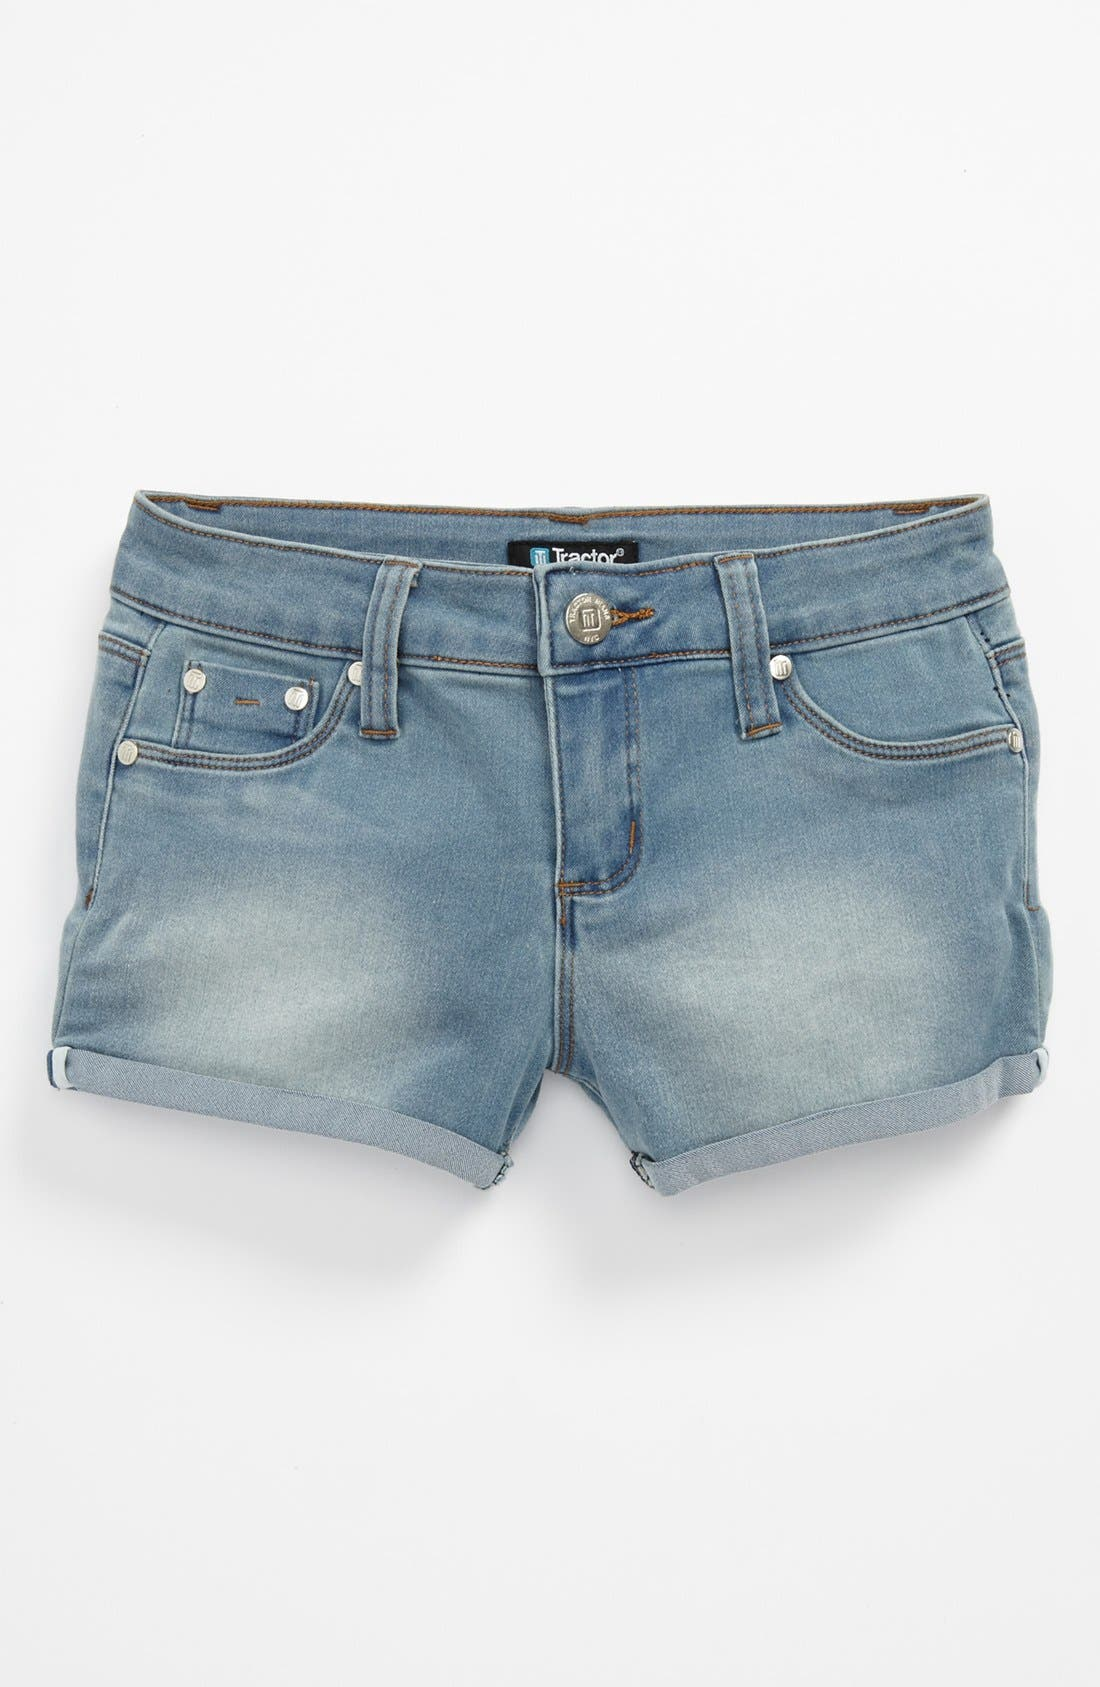 Alternate Image 1 Selected - Tractor 'Roll Up' Shorts (Big Girls)